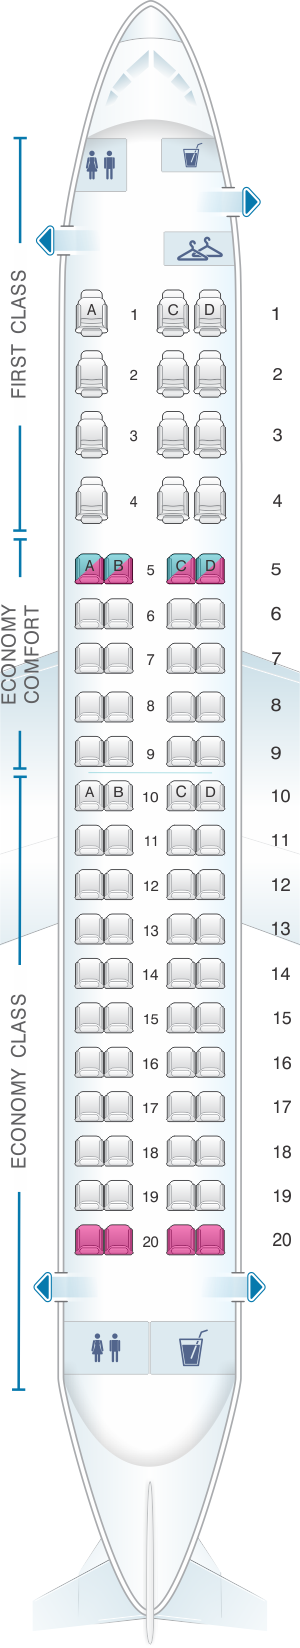 Seat map for Delta Air Lines Embraer E175 SkyWest/Republic